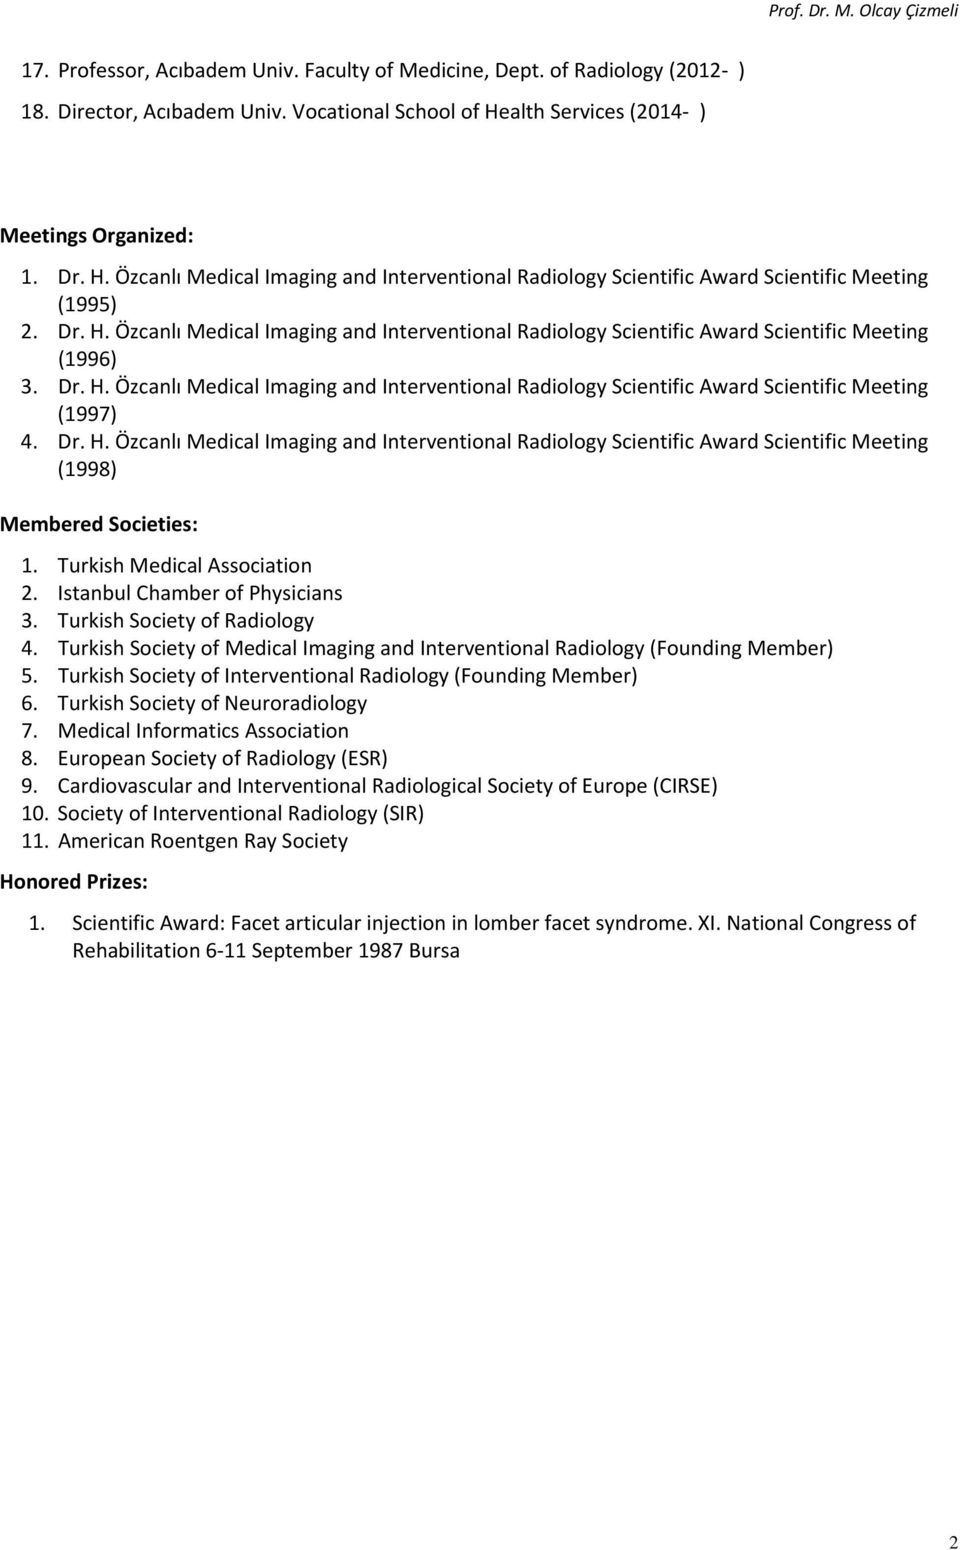 Dr. H. Özcanlı Medical Imaging and Interventional Radiology Scientific Award Scientific Meeting (1997) 4. Dr. H. Özcanlı Medical Imaging and Interventional Radiology Scientific Award Scientific Meeting (1998) Membered Societies: 1.